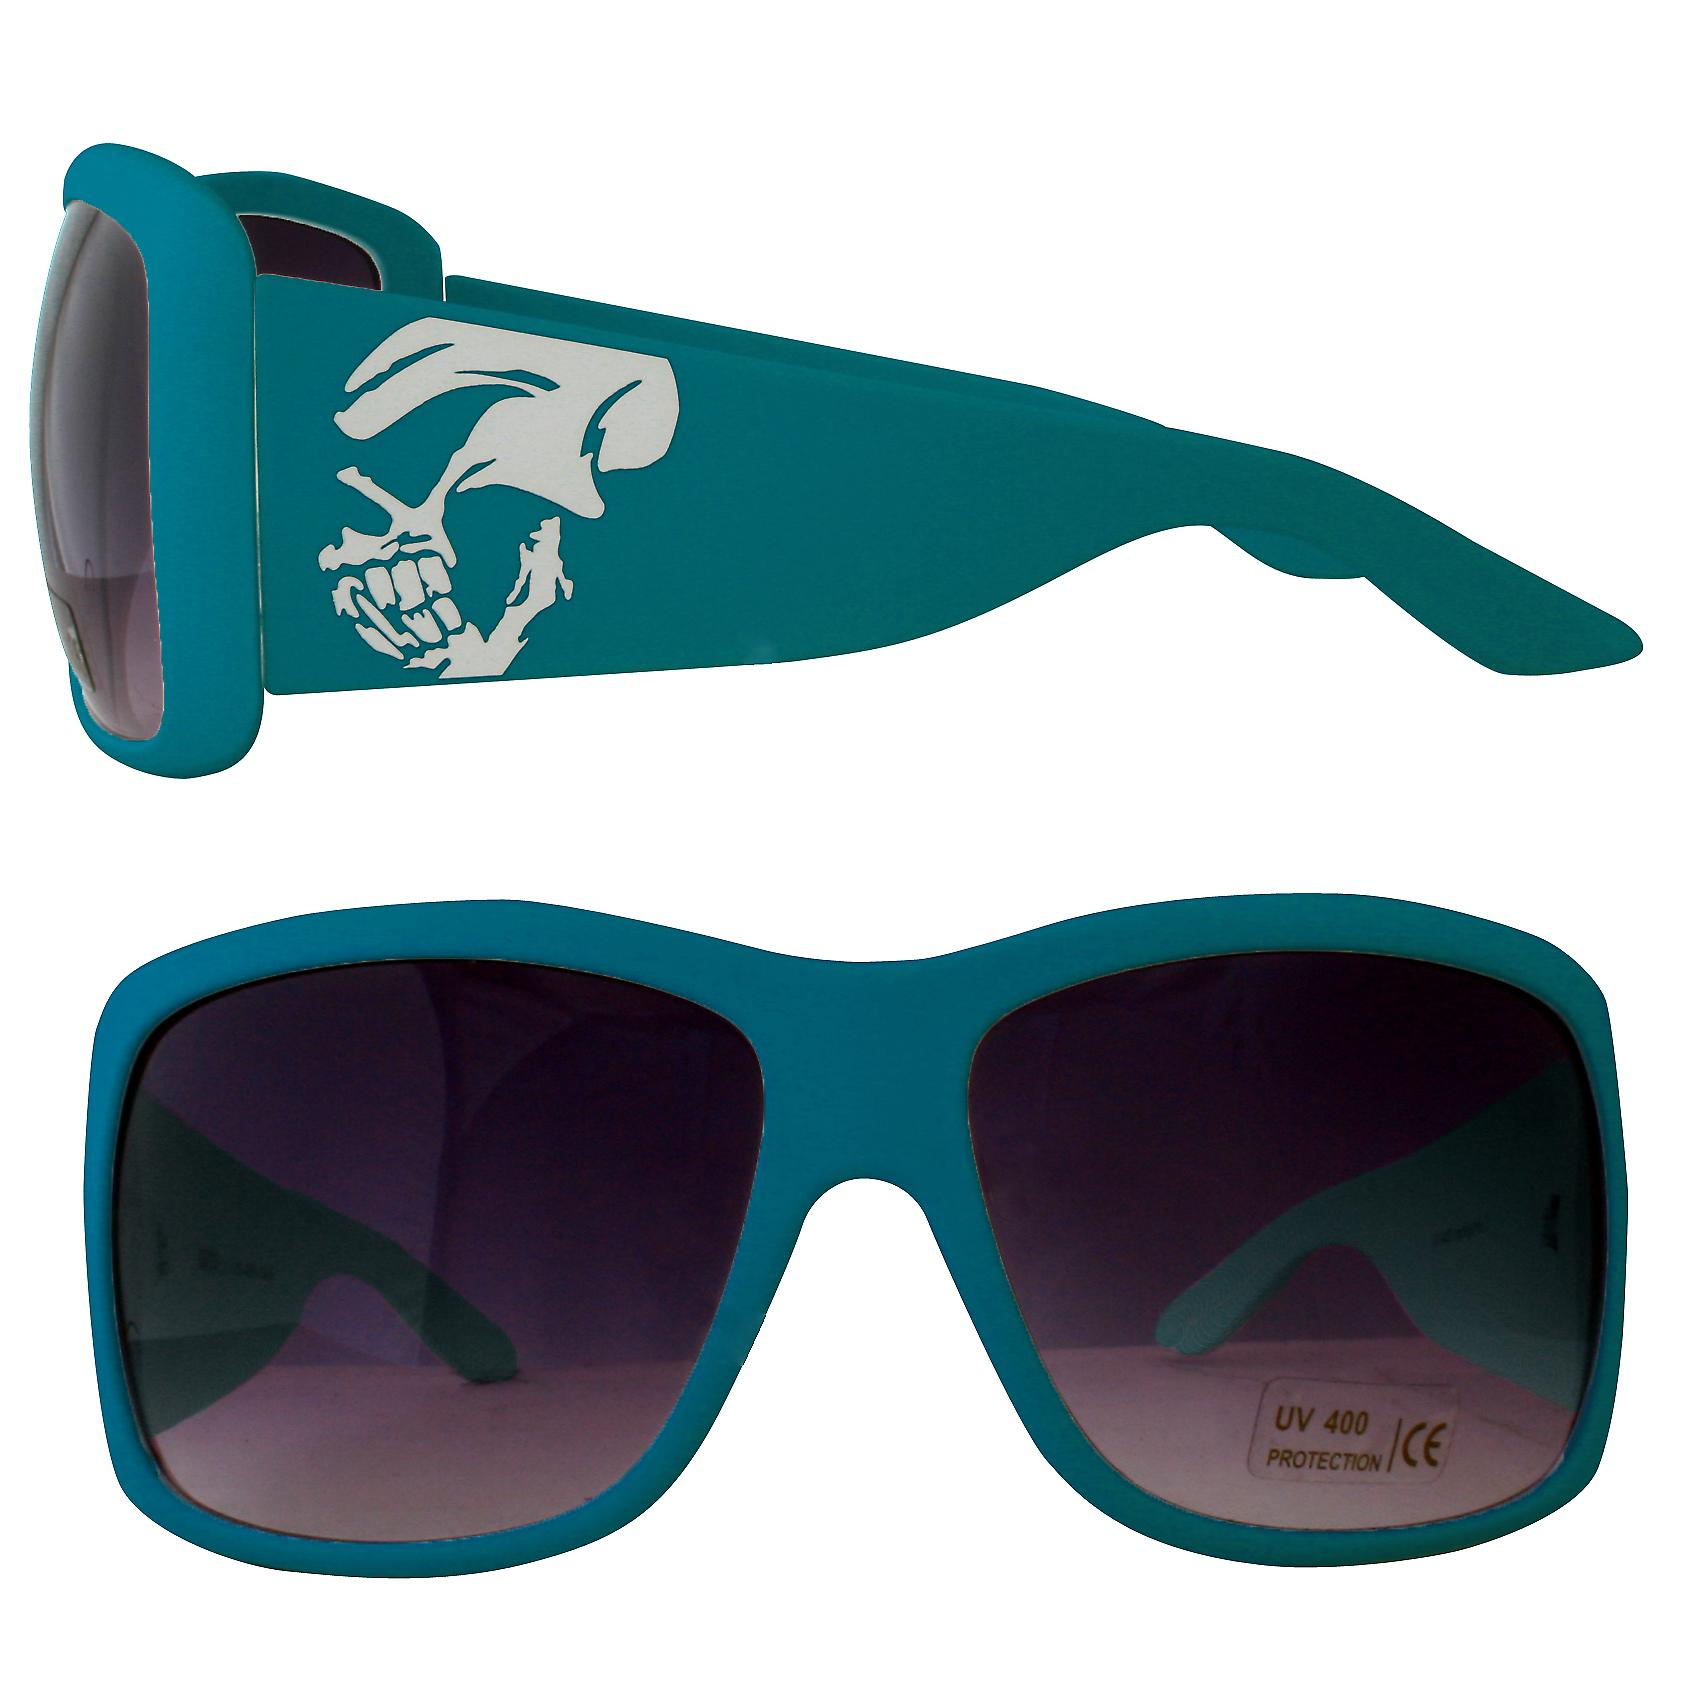 Waooh - Sunglasses 910 - Skull Tribal Design - Frame Colour - Protection UV400 Category 3 - Sunglasses